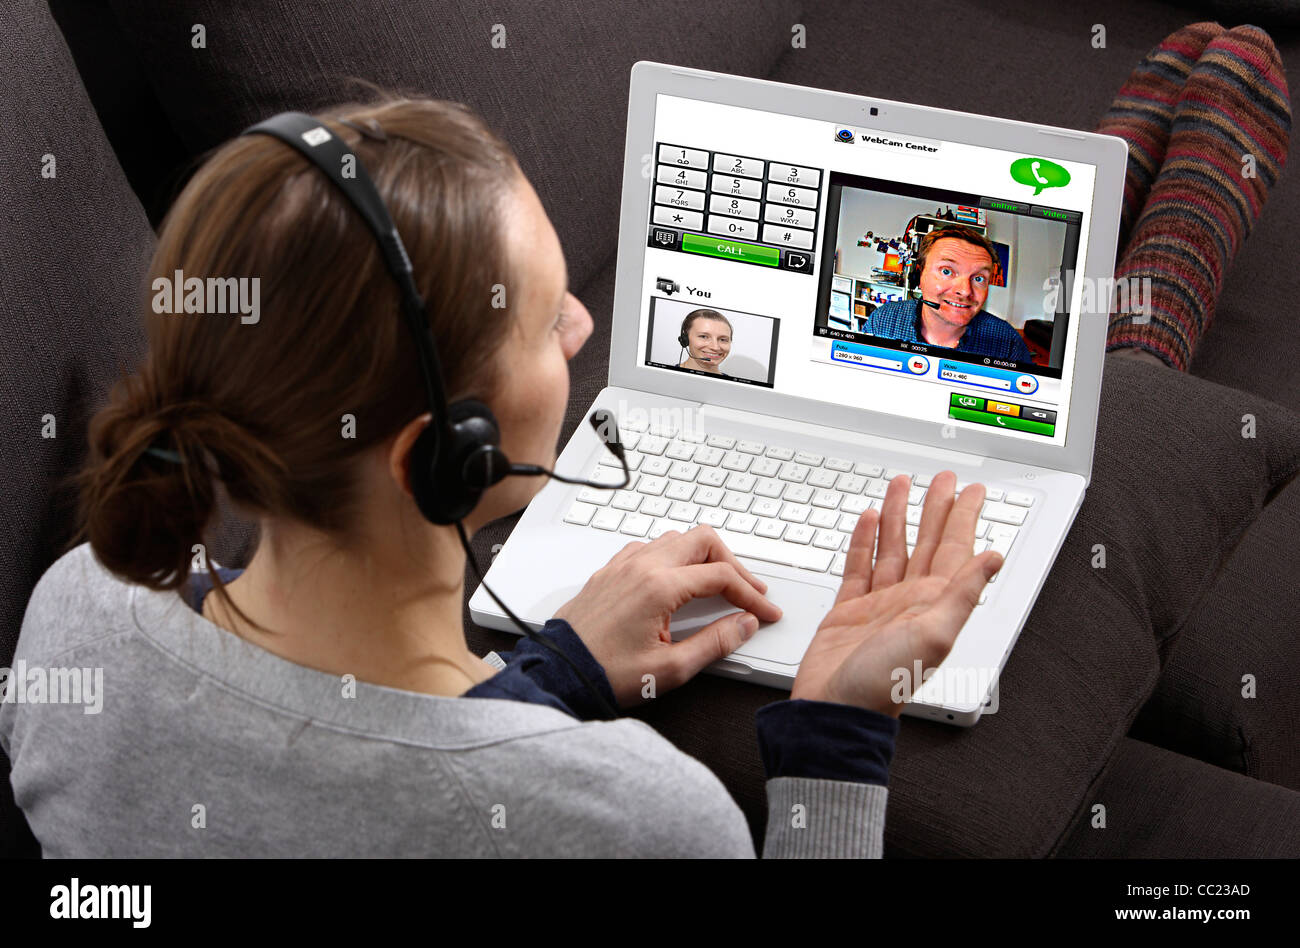 Webcam online video chat